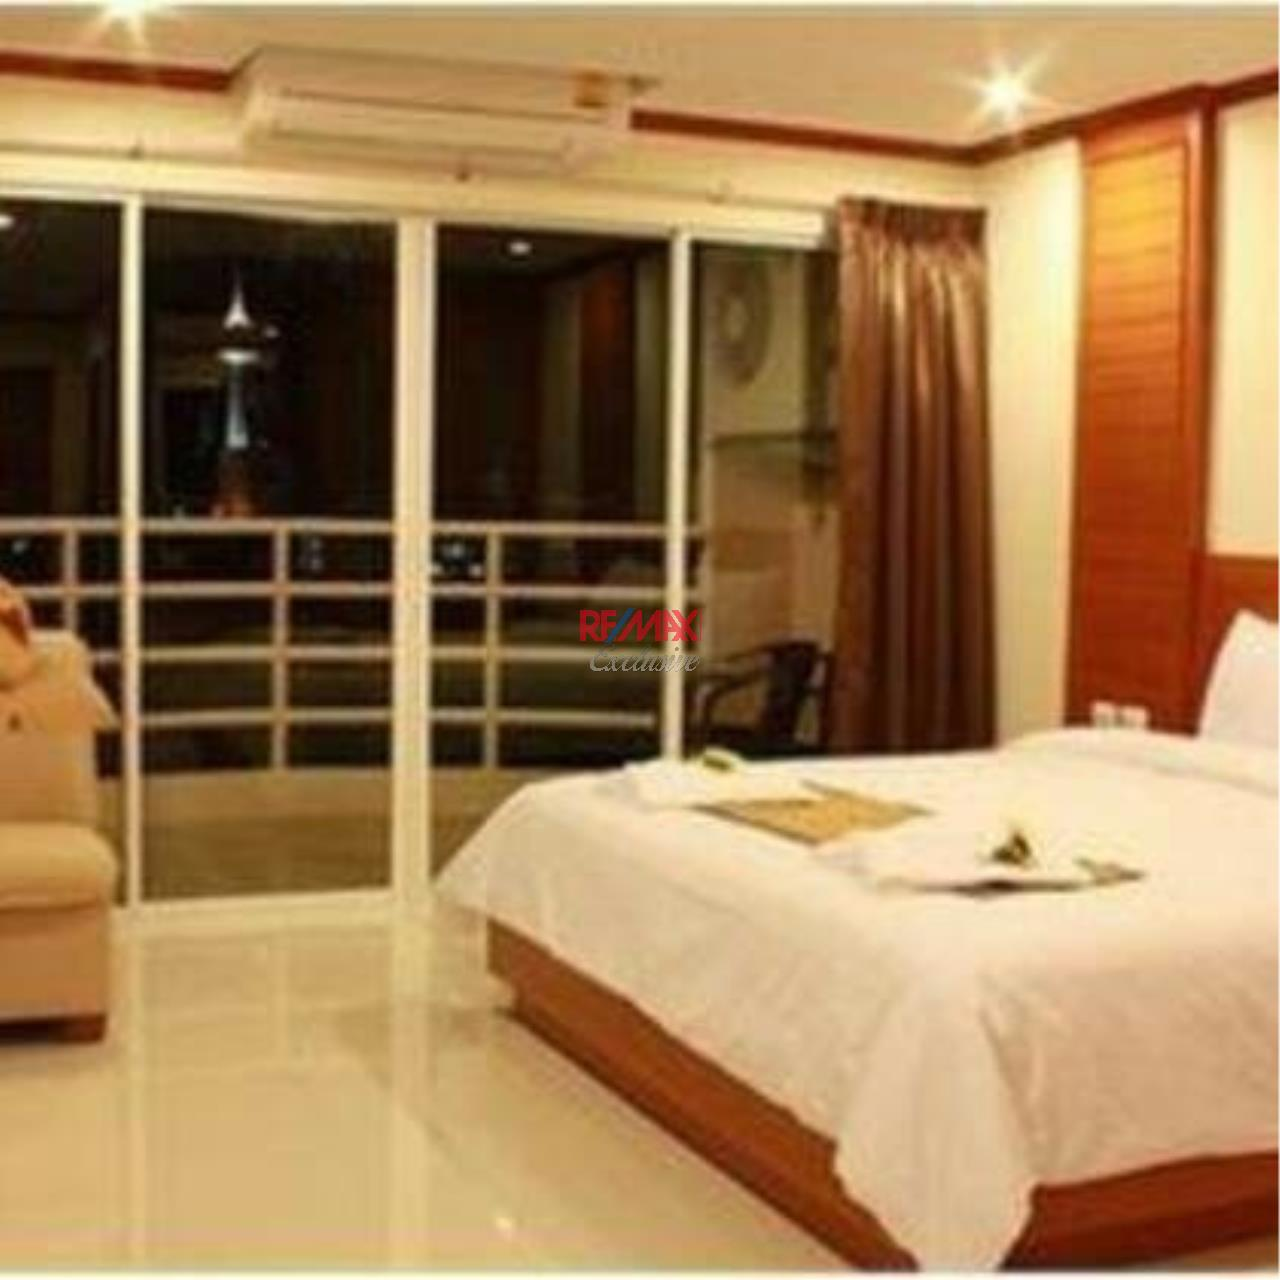 RE/MAX Exclusive Agency's Hotel with 80 Rooms for sale in Partumnak Pattaya Chonburi Great Price 130,000,000 3